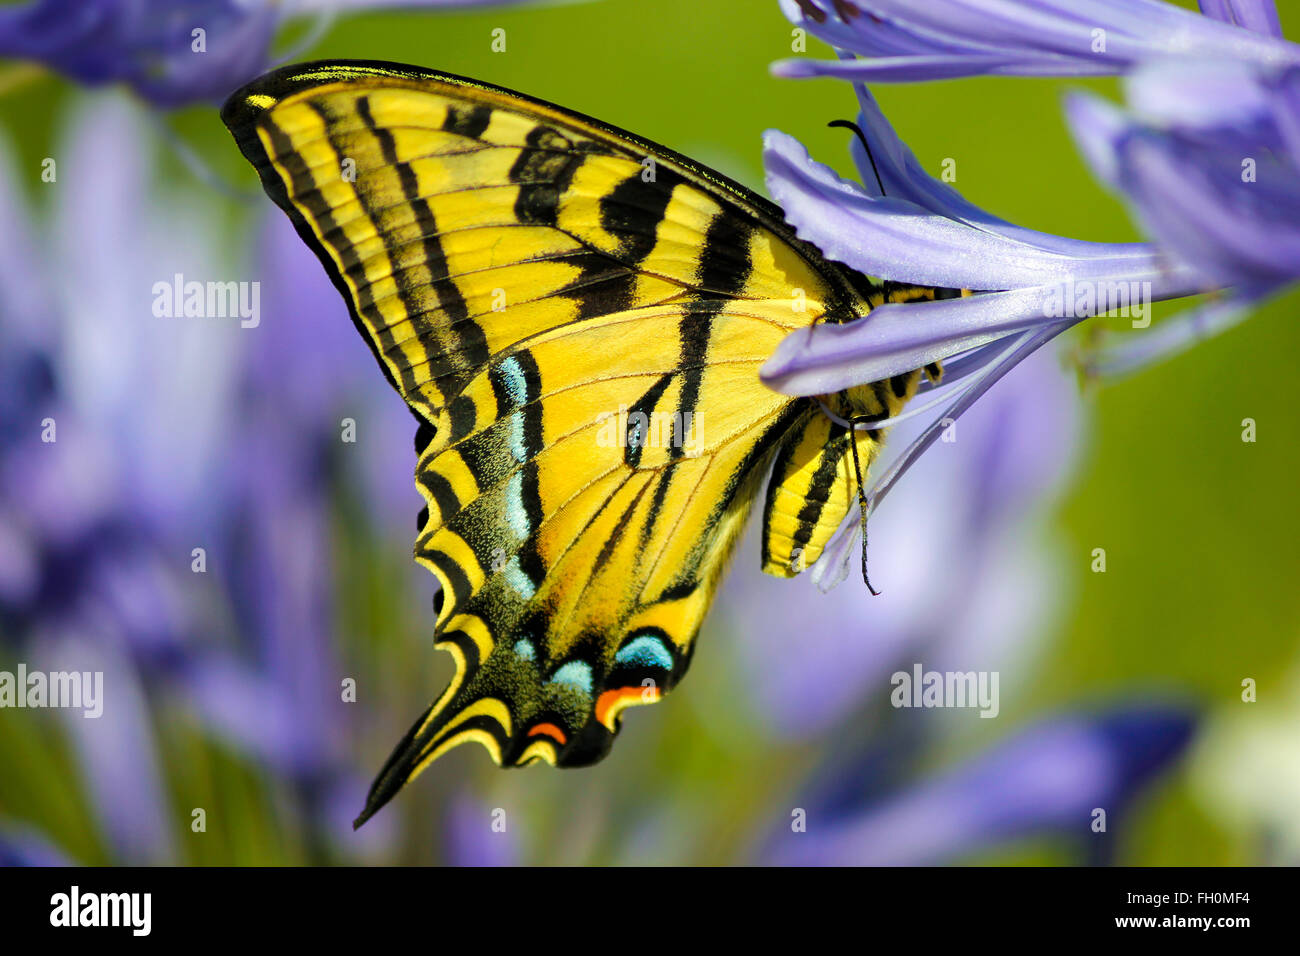 Yellow Swallowtail butterfly on a purple lilly garden - Stock Image